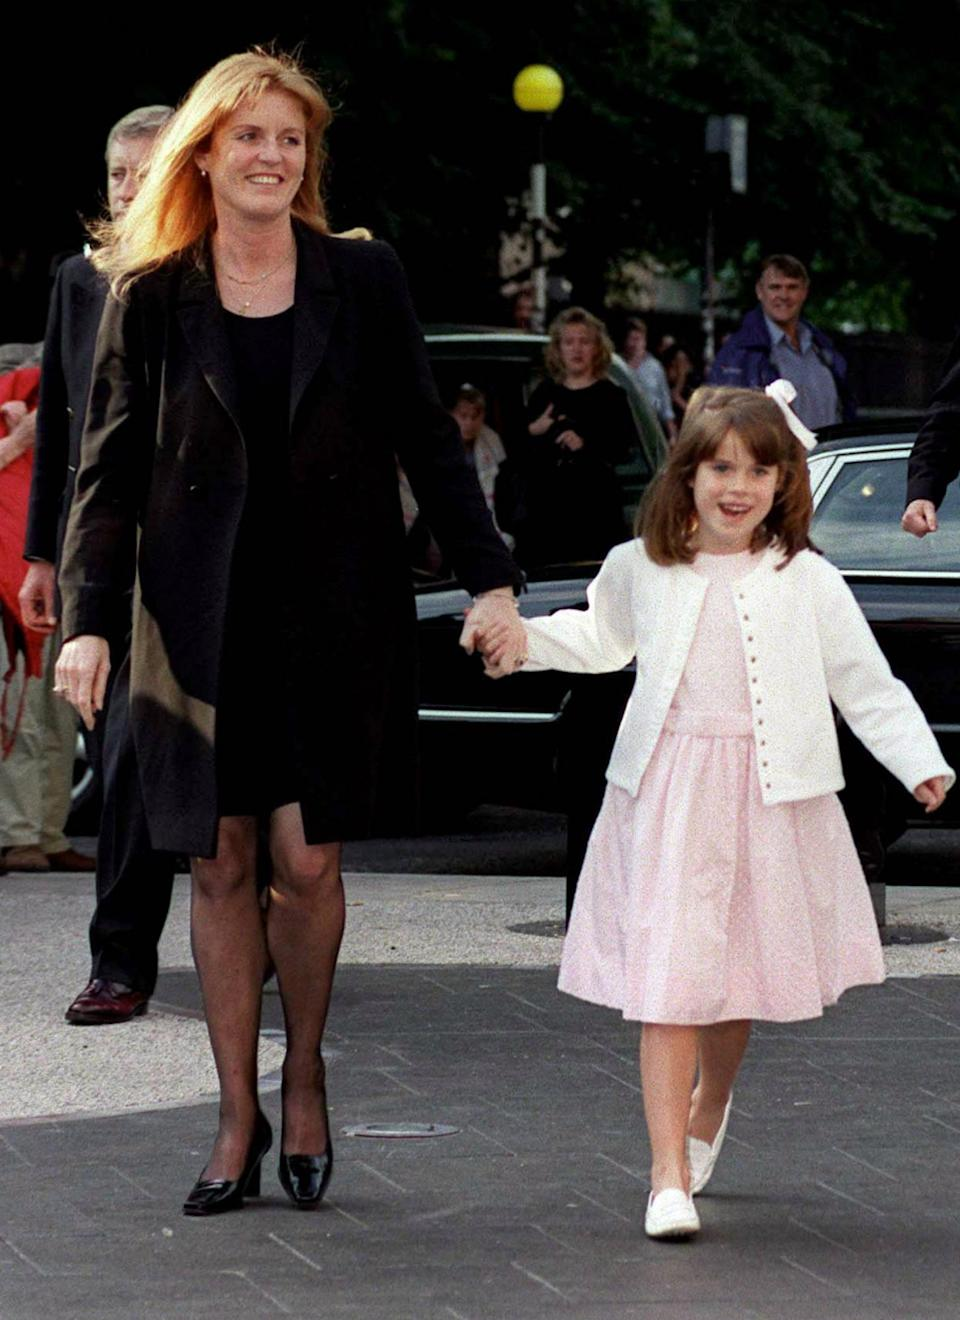 Princess Eugenie and her mum Sarah Ferguson (Fergie) say Eugenie's name is like saying 'Use Your Knees' Source: Getty